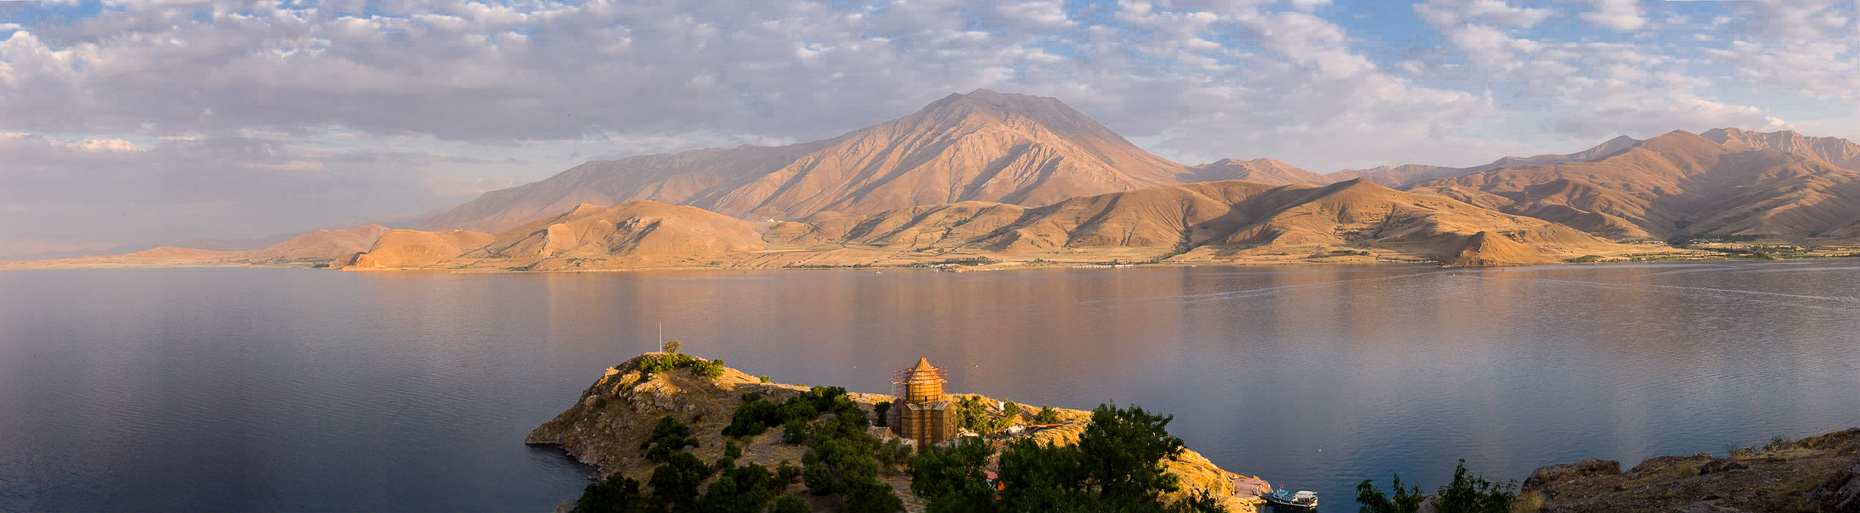 Panoramic landscape of Akdamar Island in middle of Van Lake, Van Turkey, made at sunset.